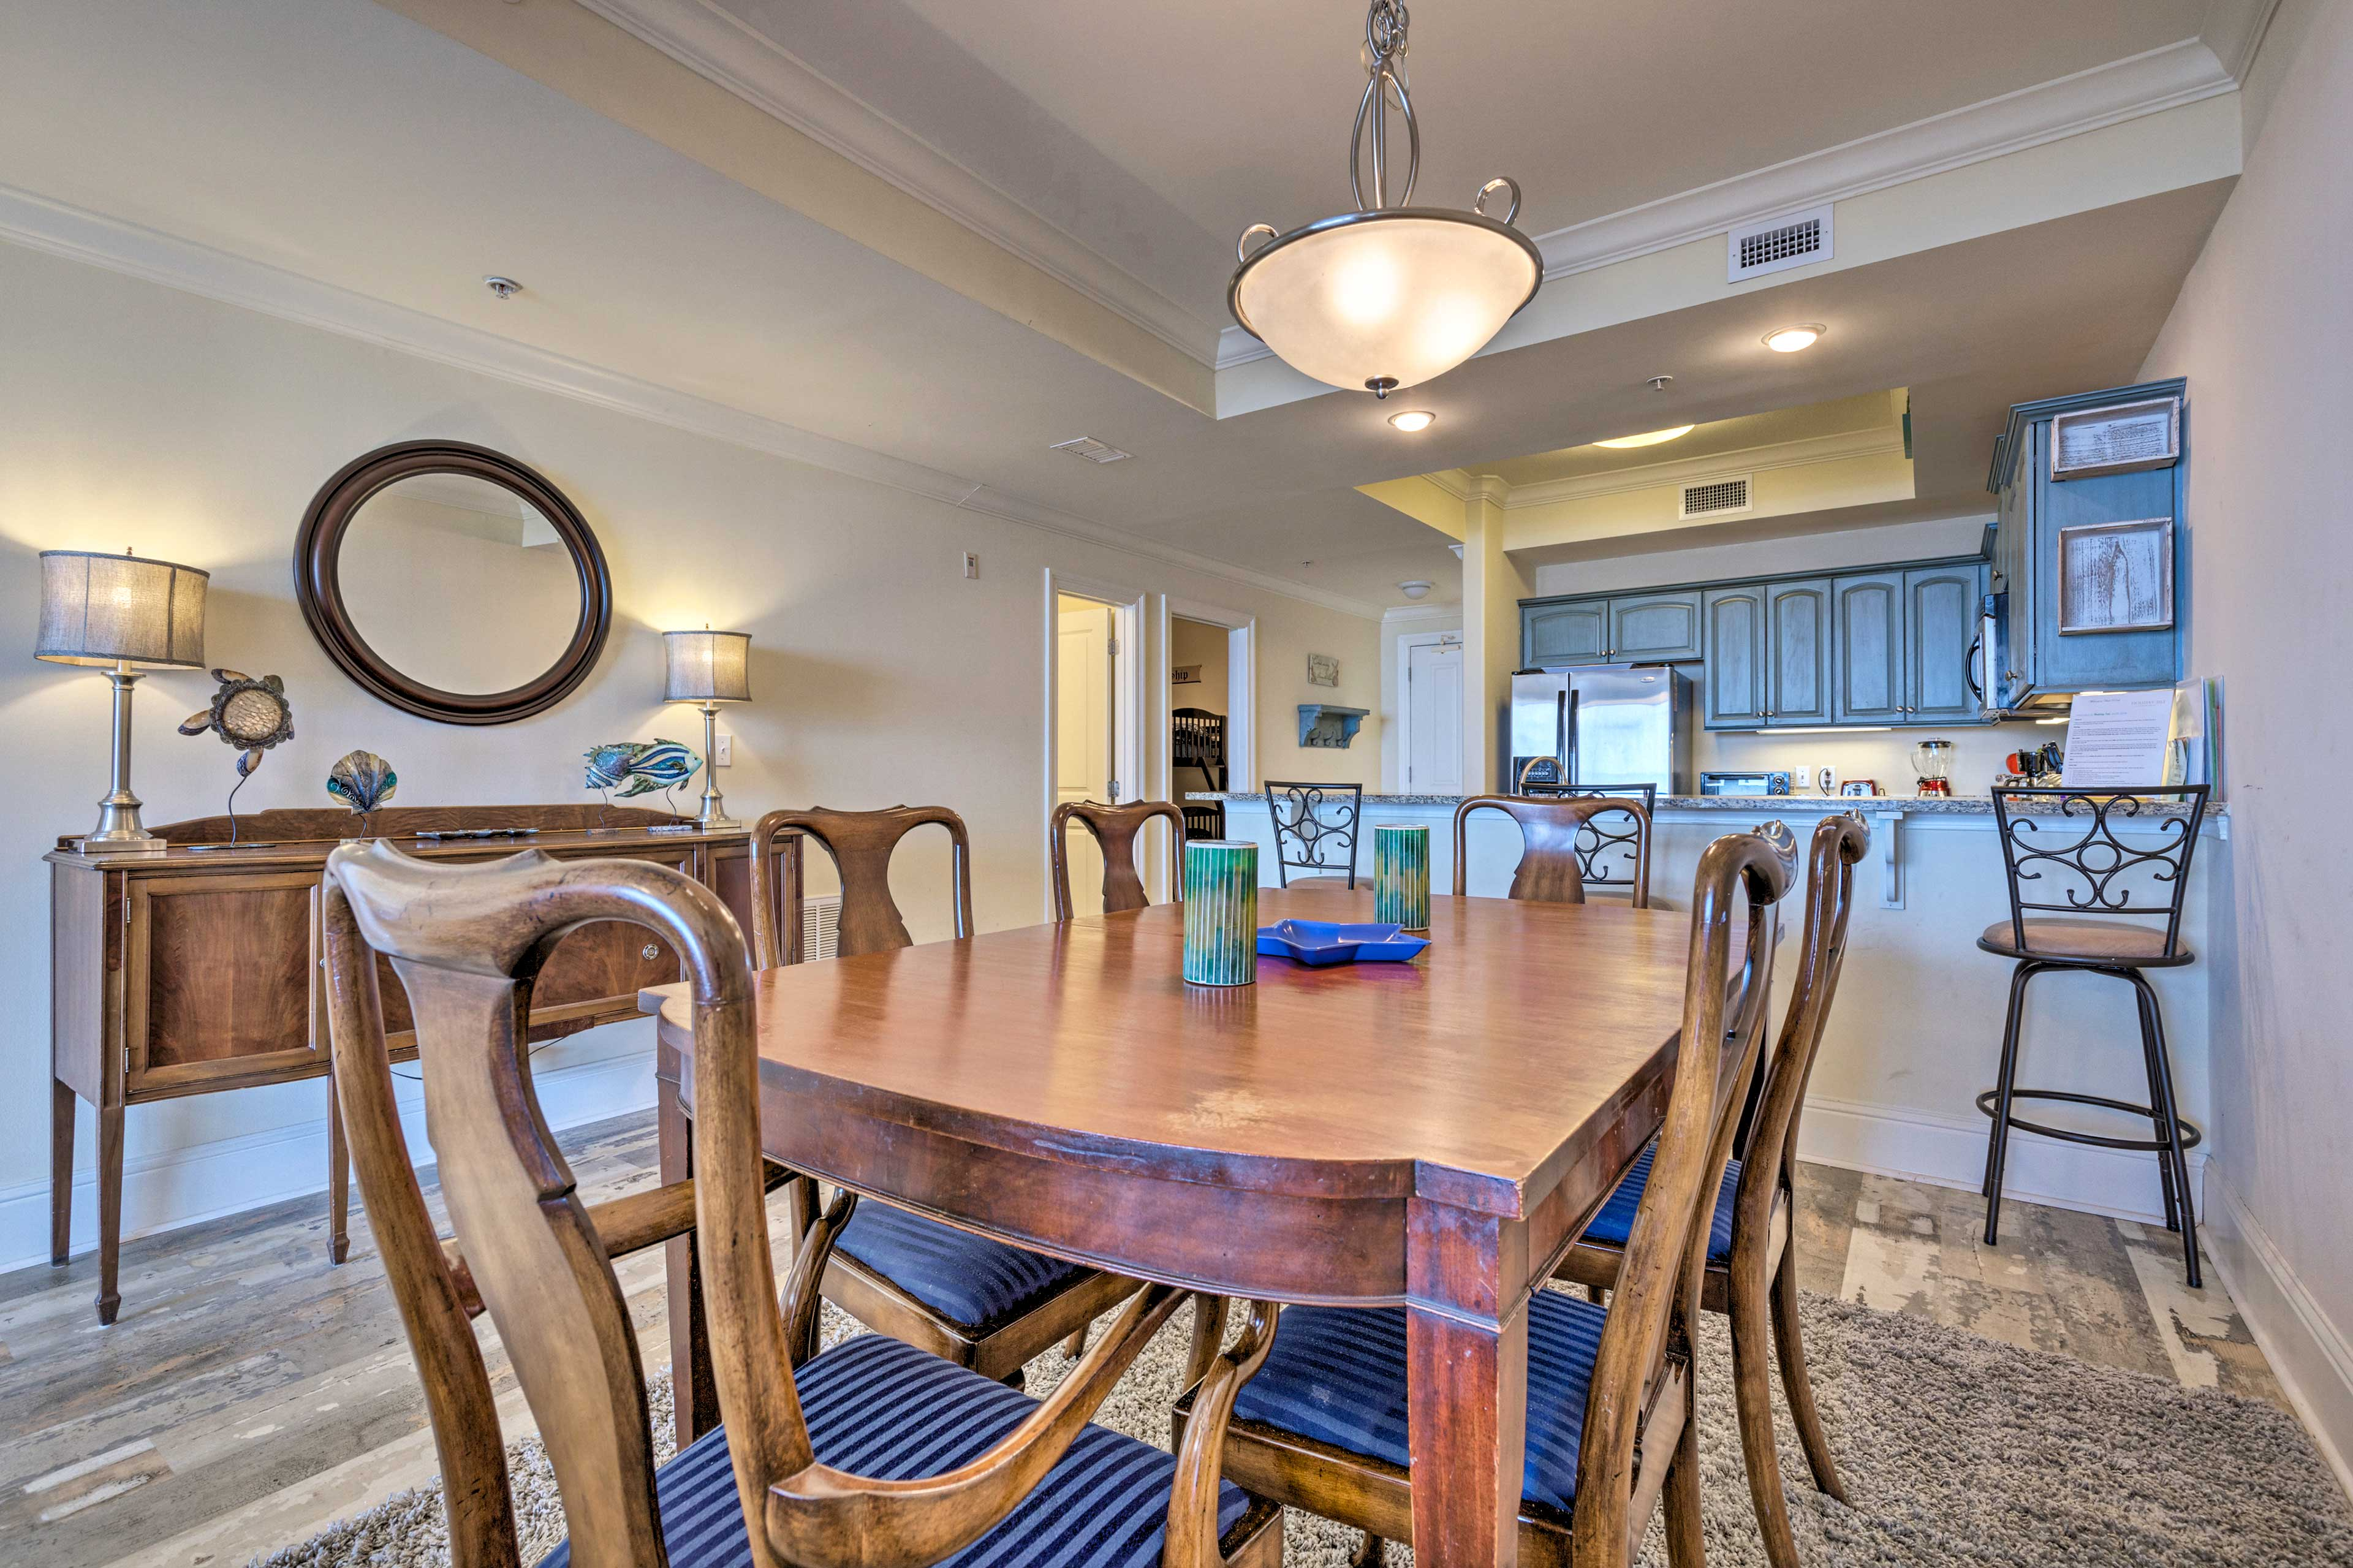 Gather around the 6-person dining table to enjoy meals with the family.